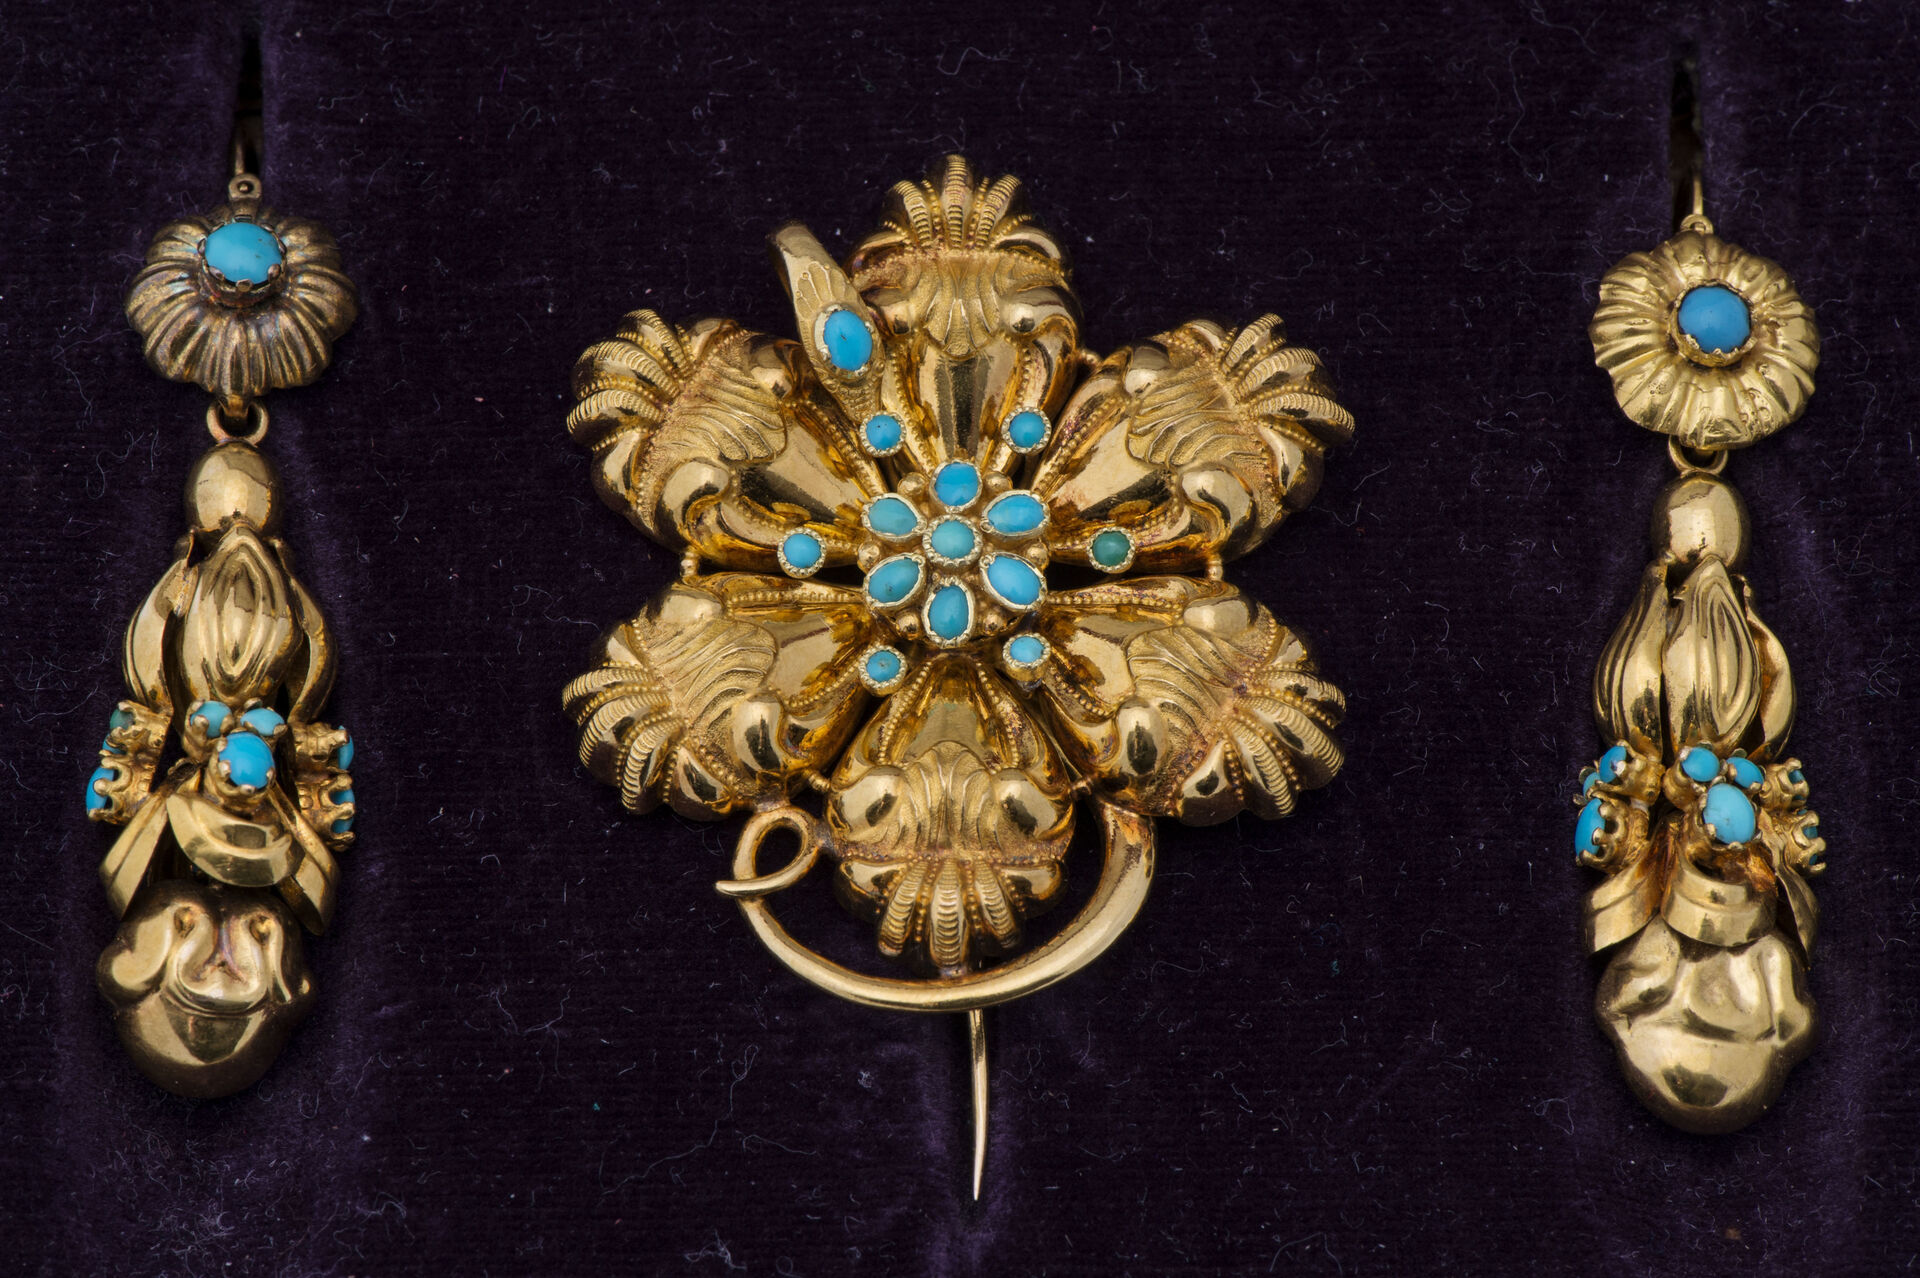 19th century brooch Ancient gold and gold metal brooch